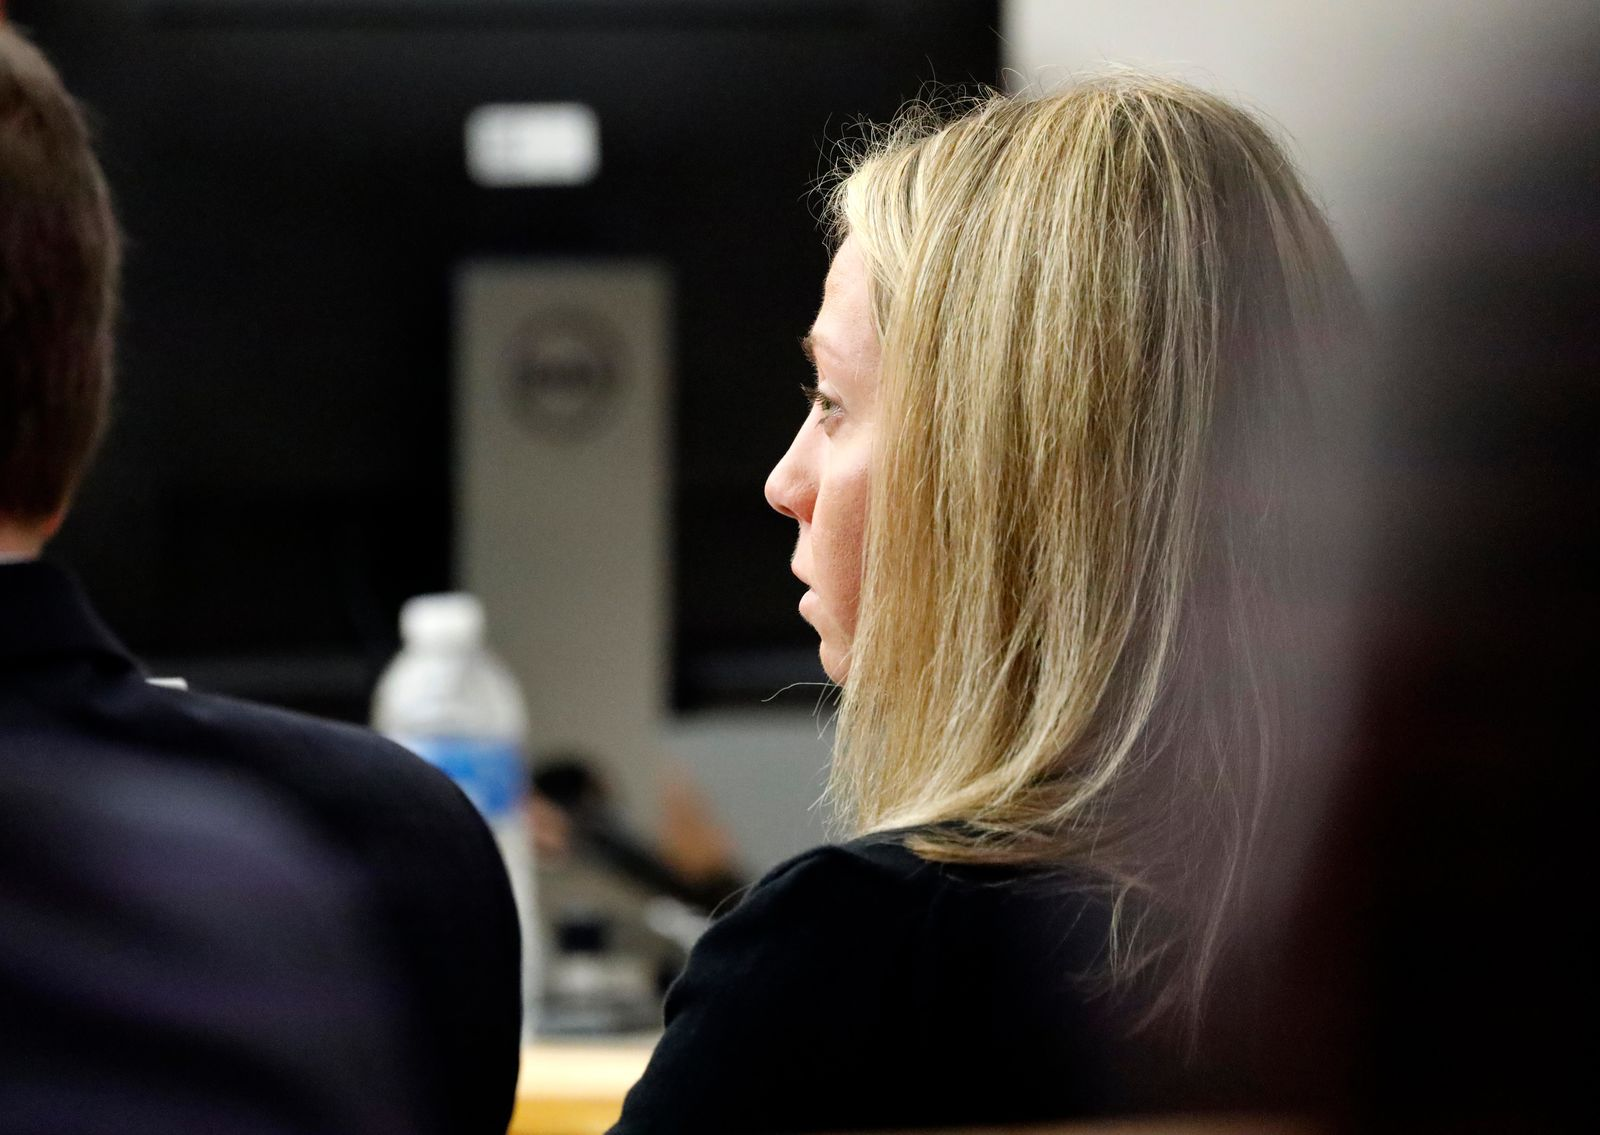 Fired Dallas police officer Amber Guyger listens as friends, family and coworkers speak in her defense during the sentencing phase of her murder trial, Wednesday, Oct. 2, 2019, in Dallas.  Guyger, who said she fatally shot her unarmed, black neighbor Botham Jean after mistaking his apartment for her own, was found guilty of murder the day before. (Tom Fox/The Dallas Morning News via AP, Pool)